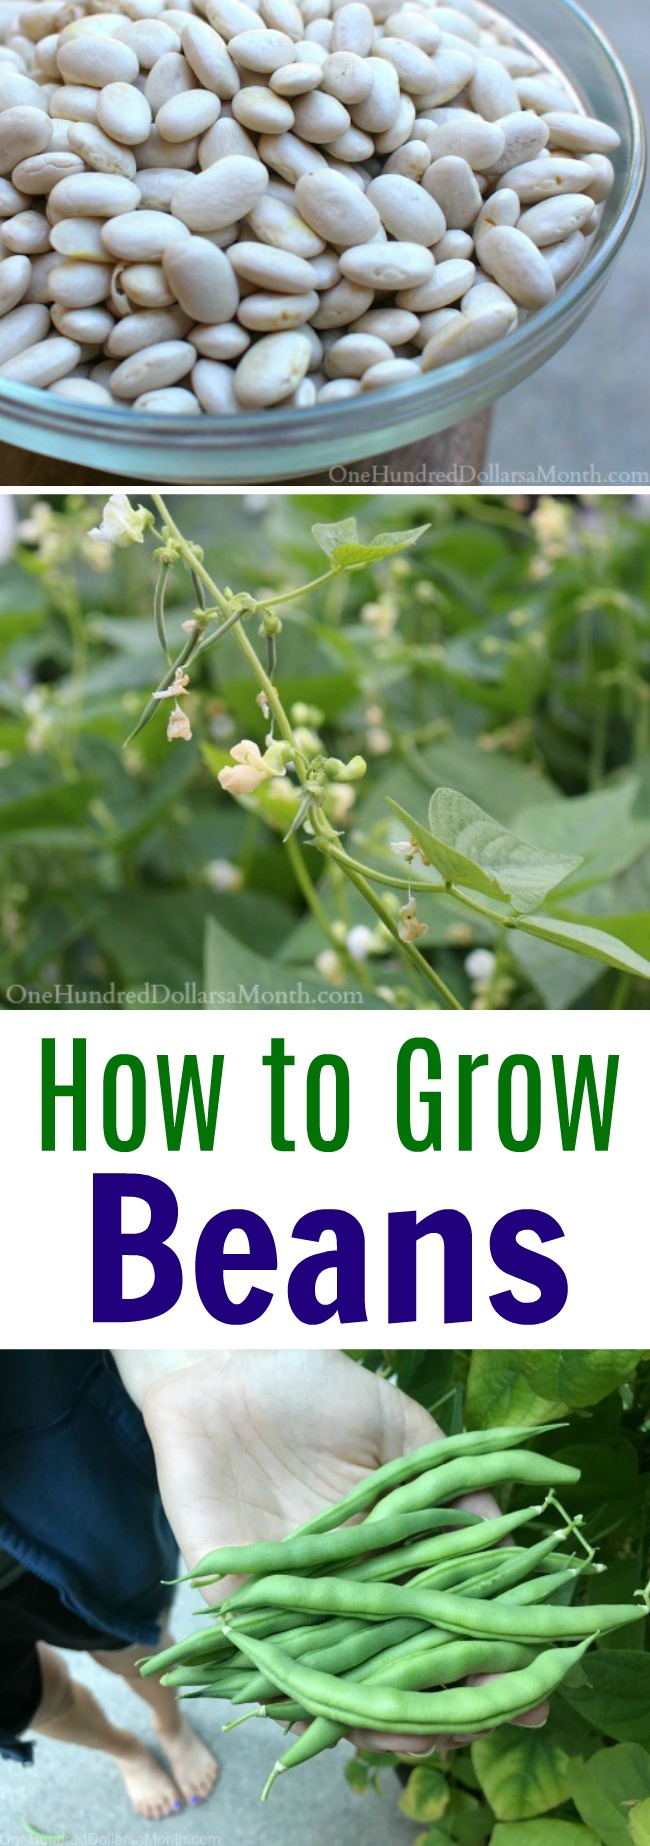 How to Grow Beans {Start to Finish}